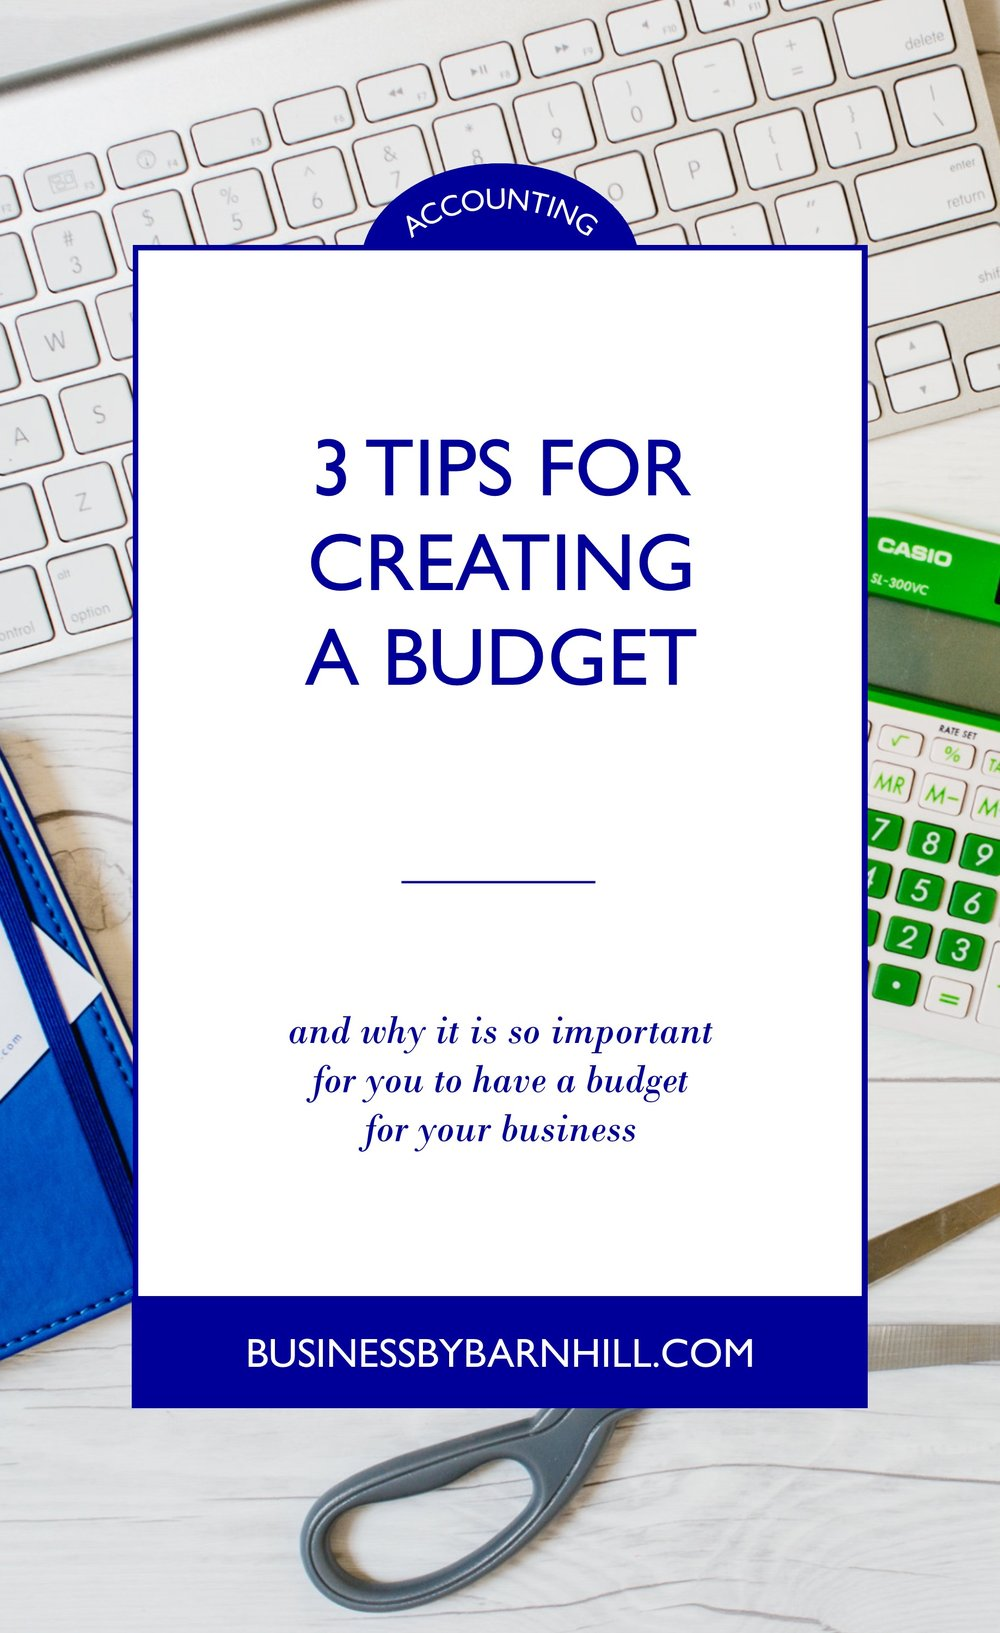 business by barnhill pinterest 3 tips for creating a budget 2.jpg